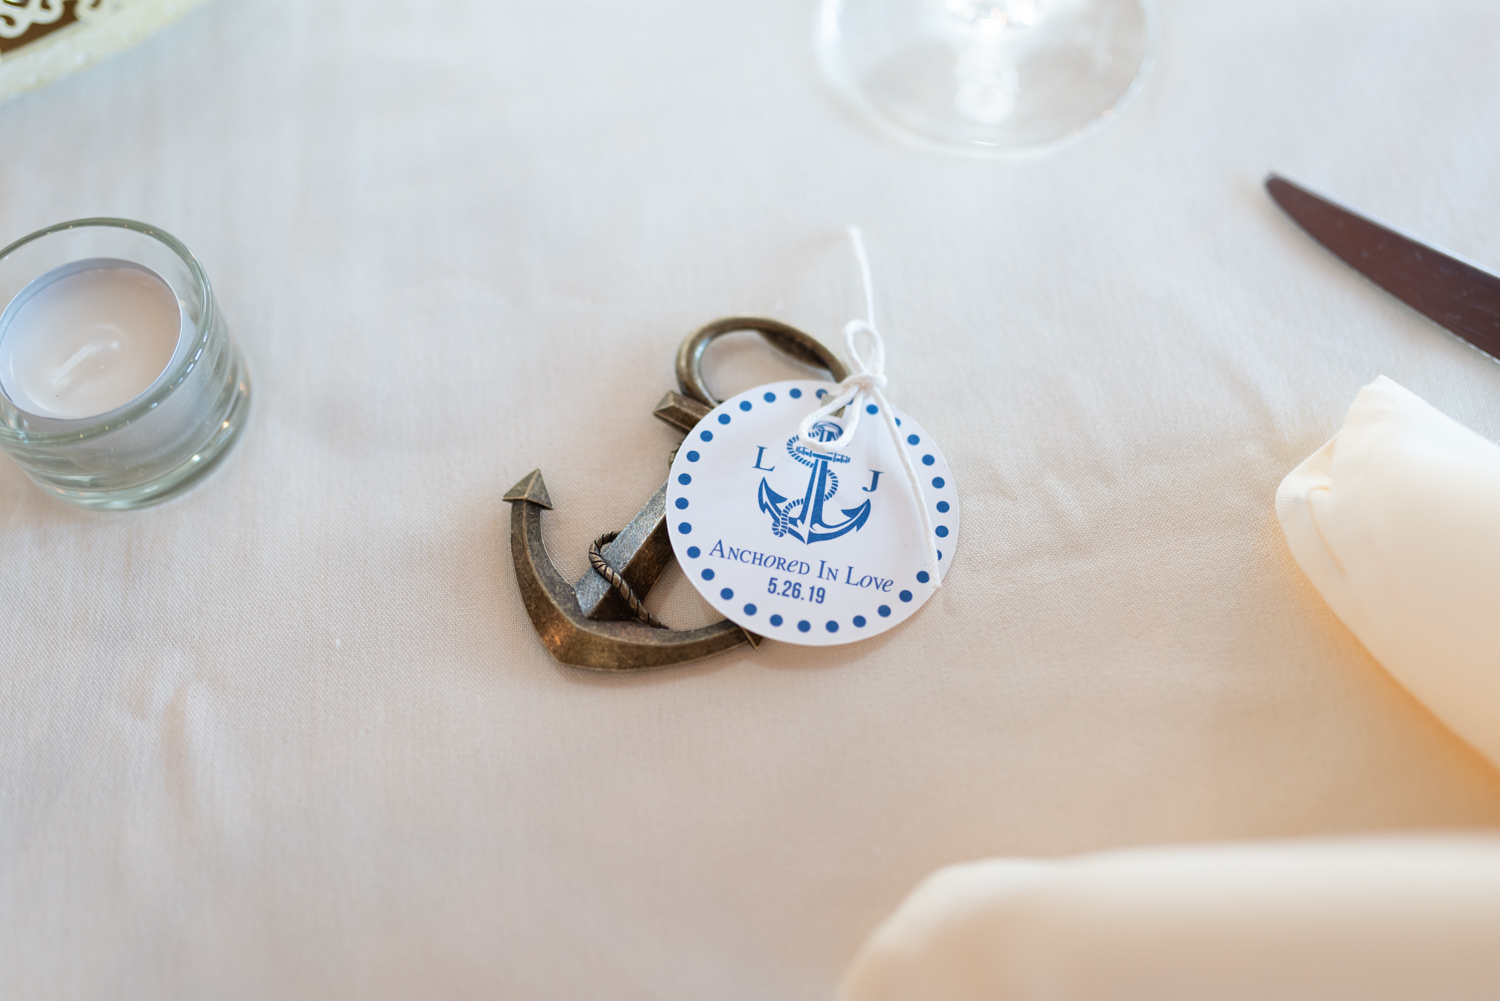 Anchored in love favors - Grande Dunes Ocean Club - Myrtle Beach